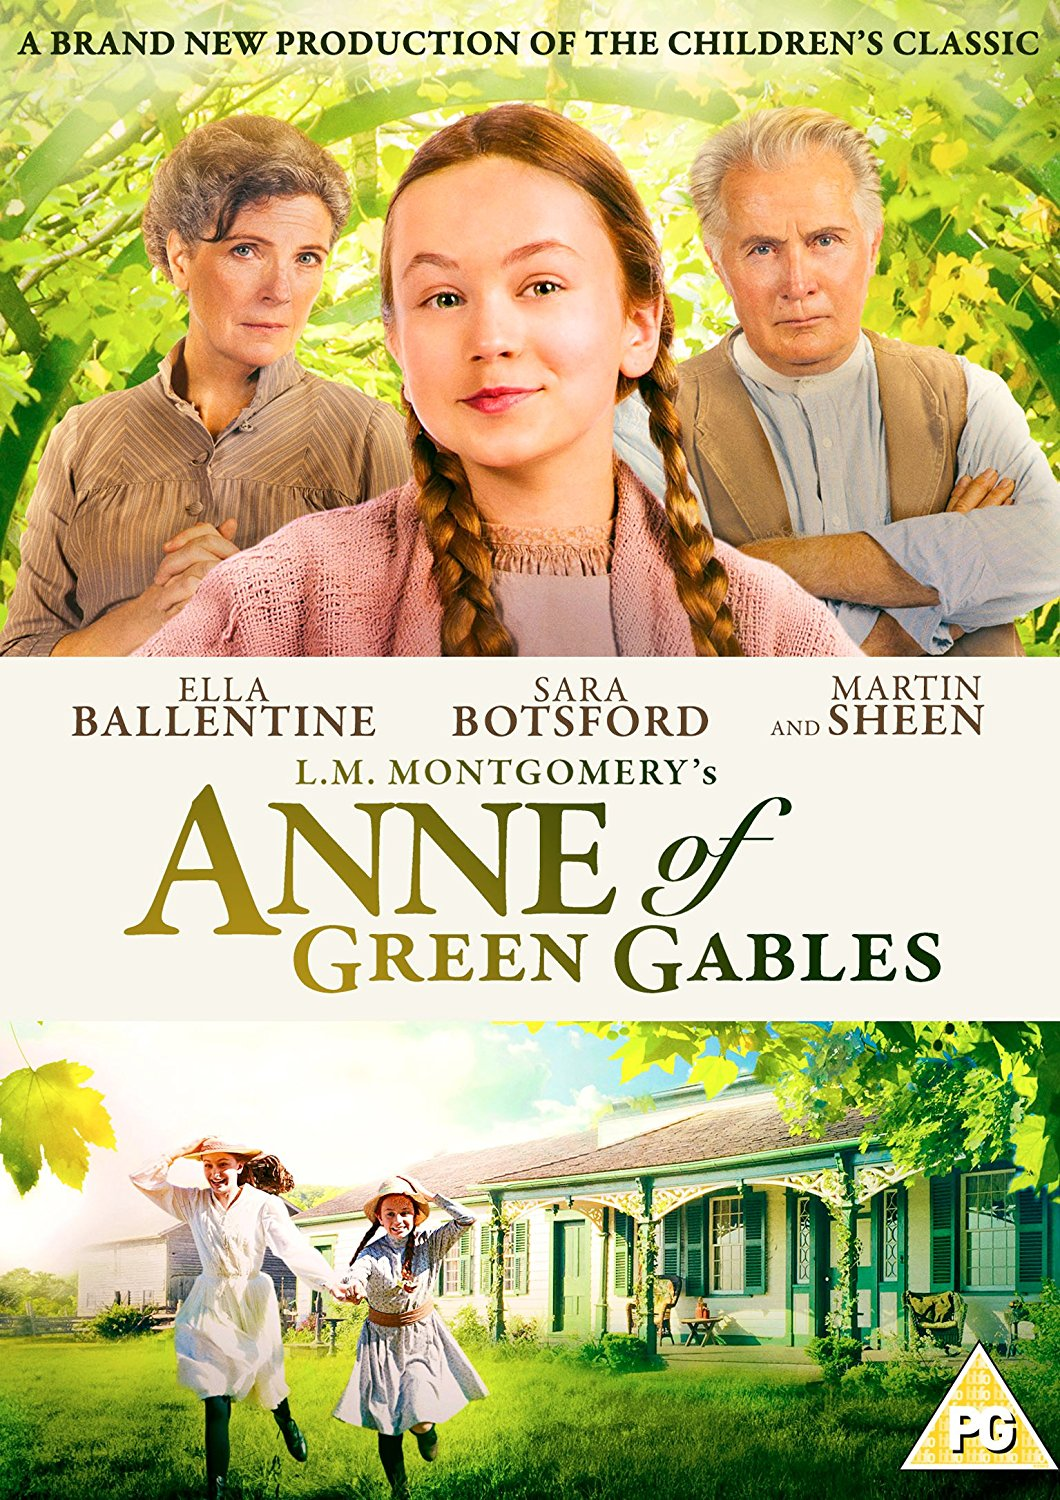 madhouse family reviews giveaway 615 win 2 x anne of green gables on dvd closed winners. Black Bedroom Furniture Sets. Home Design Ideas